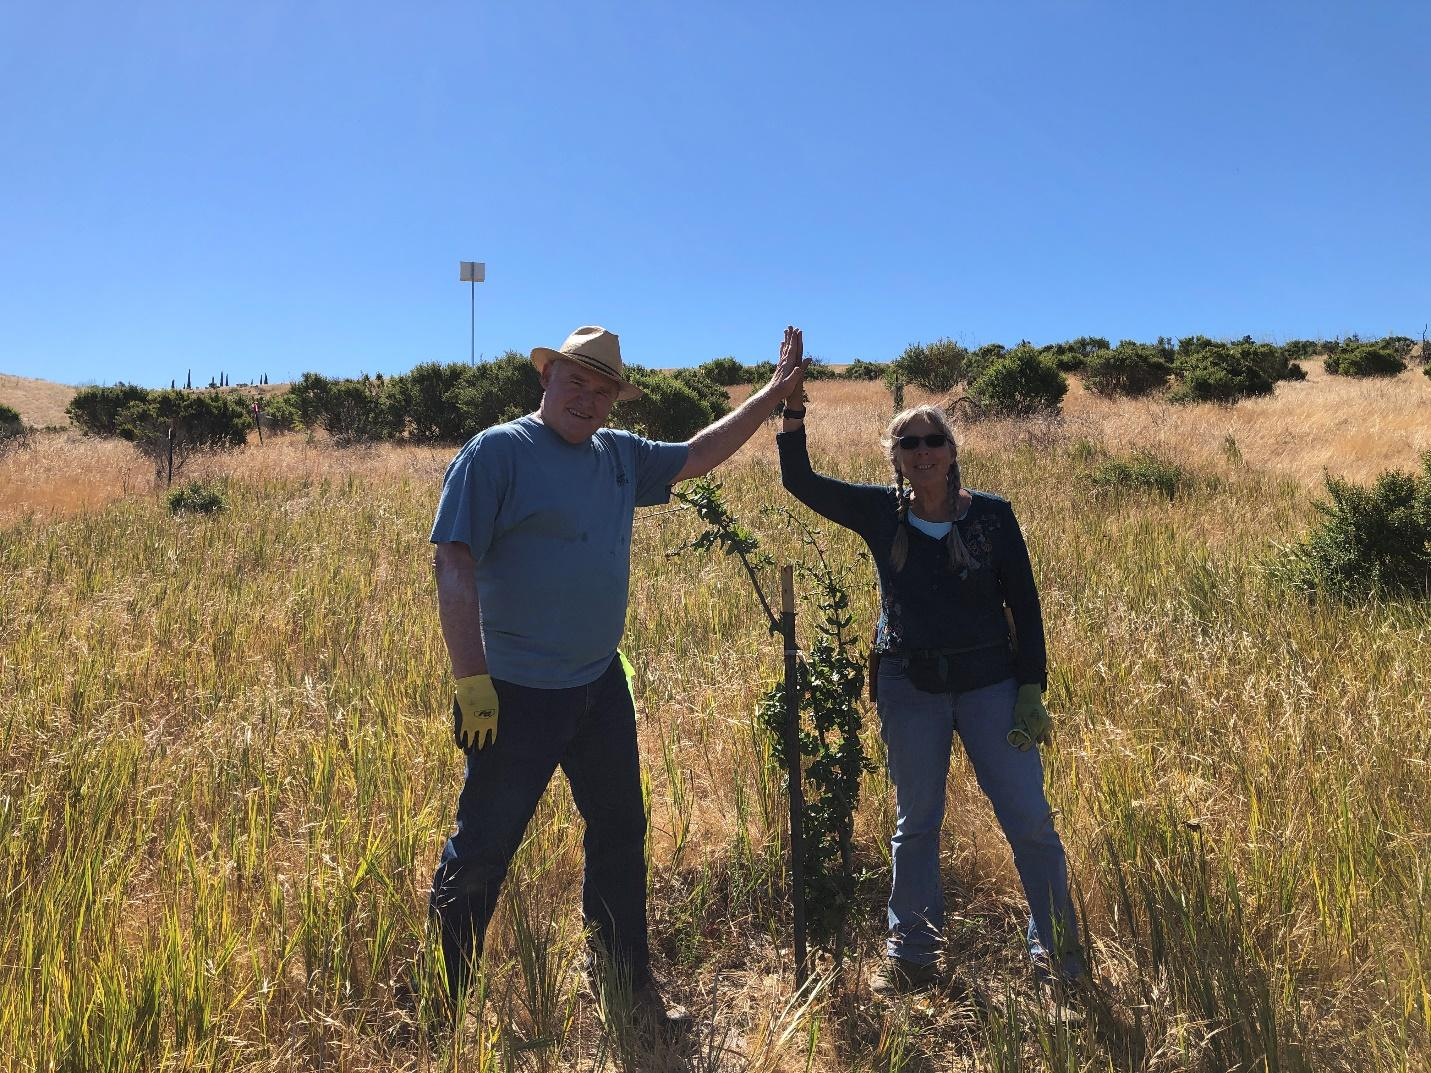 Steve, Alison, and a 4-year-old oak sapling newly released from its vole-proof cage, with an owl box in the background. Near Lake Herman.